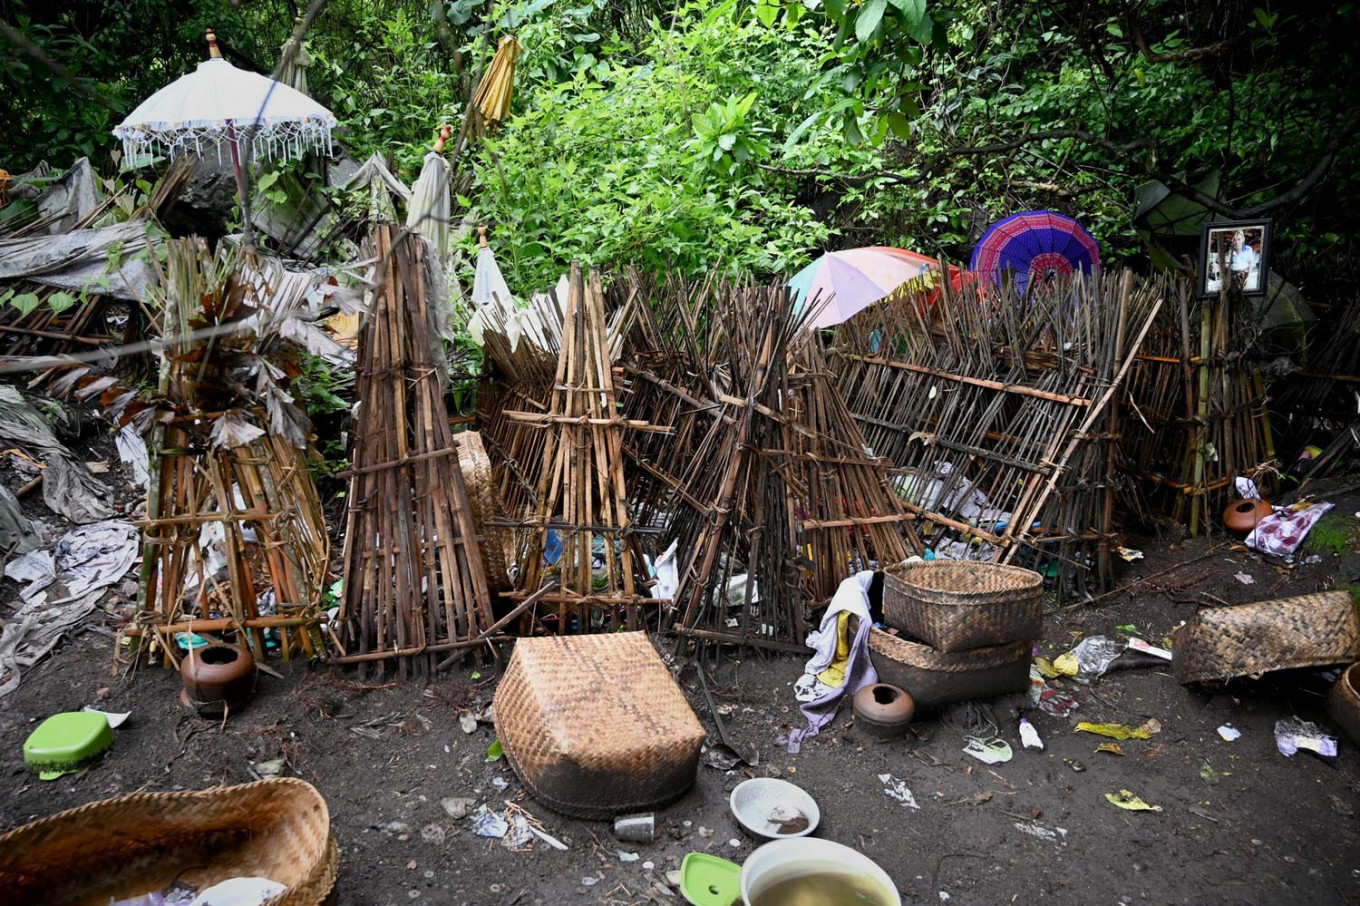 This picture taken on February 20, 2020 shows items (bottom) left from ceremonial offerings for use in the afterlife scattered on the ground next to bamboo cages which cover bodies at a cemetery where Bali's Trunyanese people hold open-air burials - before restrictions were implemented due to the COVID-19 coronavirus - near the village of Trunyan in Bangli Regency, near Lake Batur on Bali island. - For centuries Bali's Trunyanese people have left their dead to decompose in the open air, the bodies placed in bamboo cages until only the skeletons remain -- a ritual they haven't given up -- even as the COVID-19 pandemic upends burial practices worldwide.  AFP/Sonny Tumbelaka